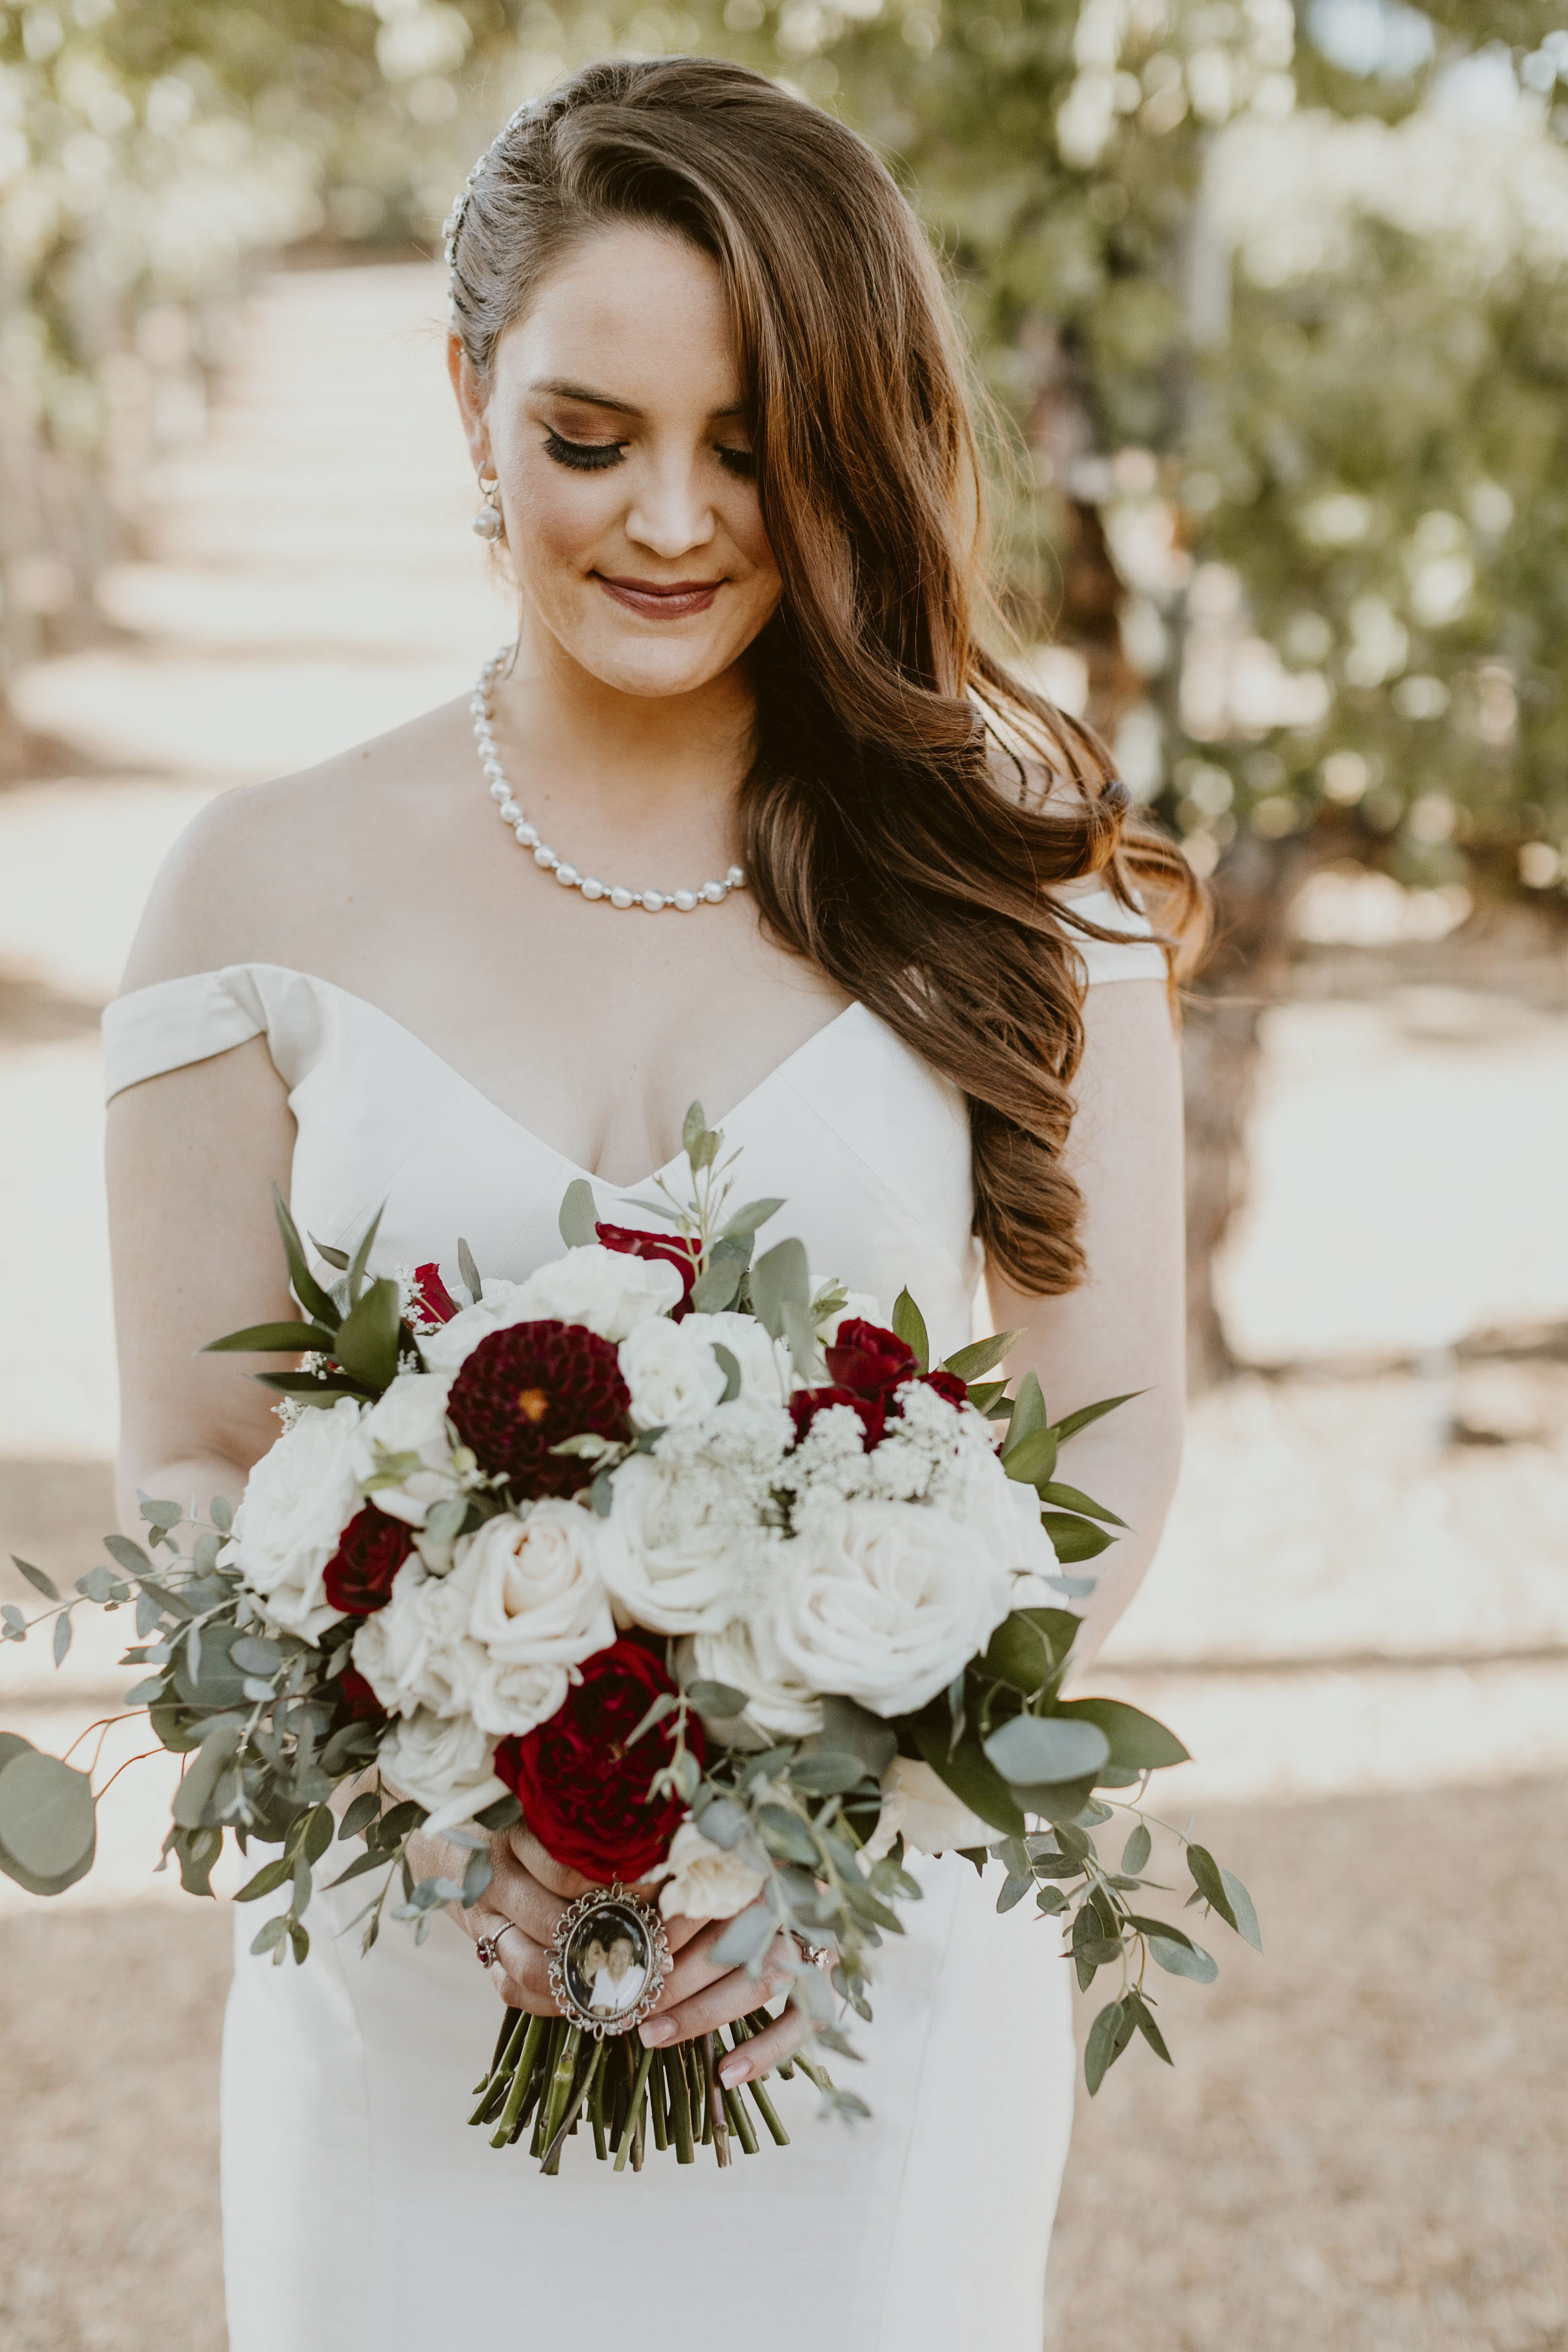 Domenica Beauty _ Hair and Makeup Artist _Wedding _ Temecula, CA _ Catherine and Darryl _ 17.JPG